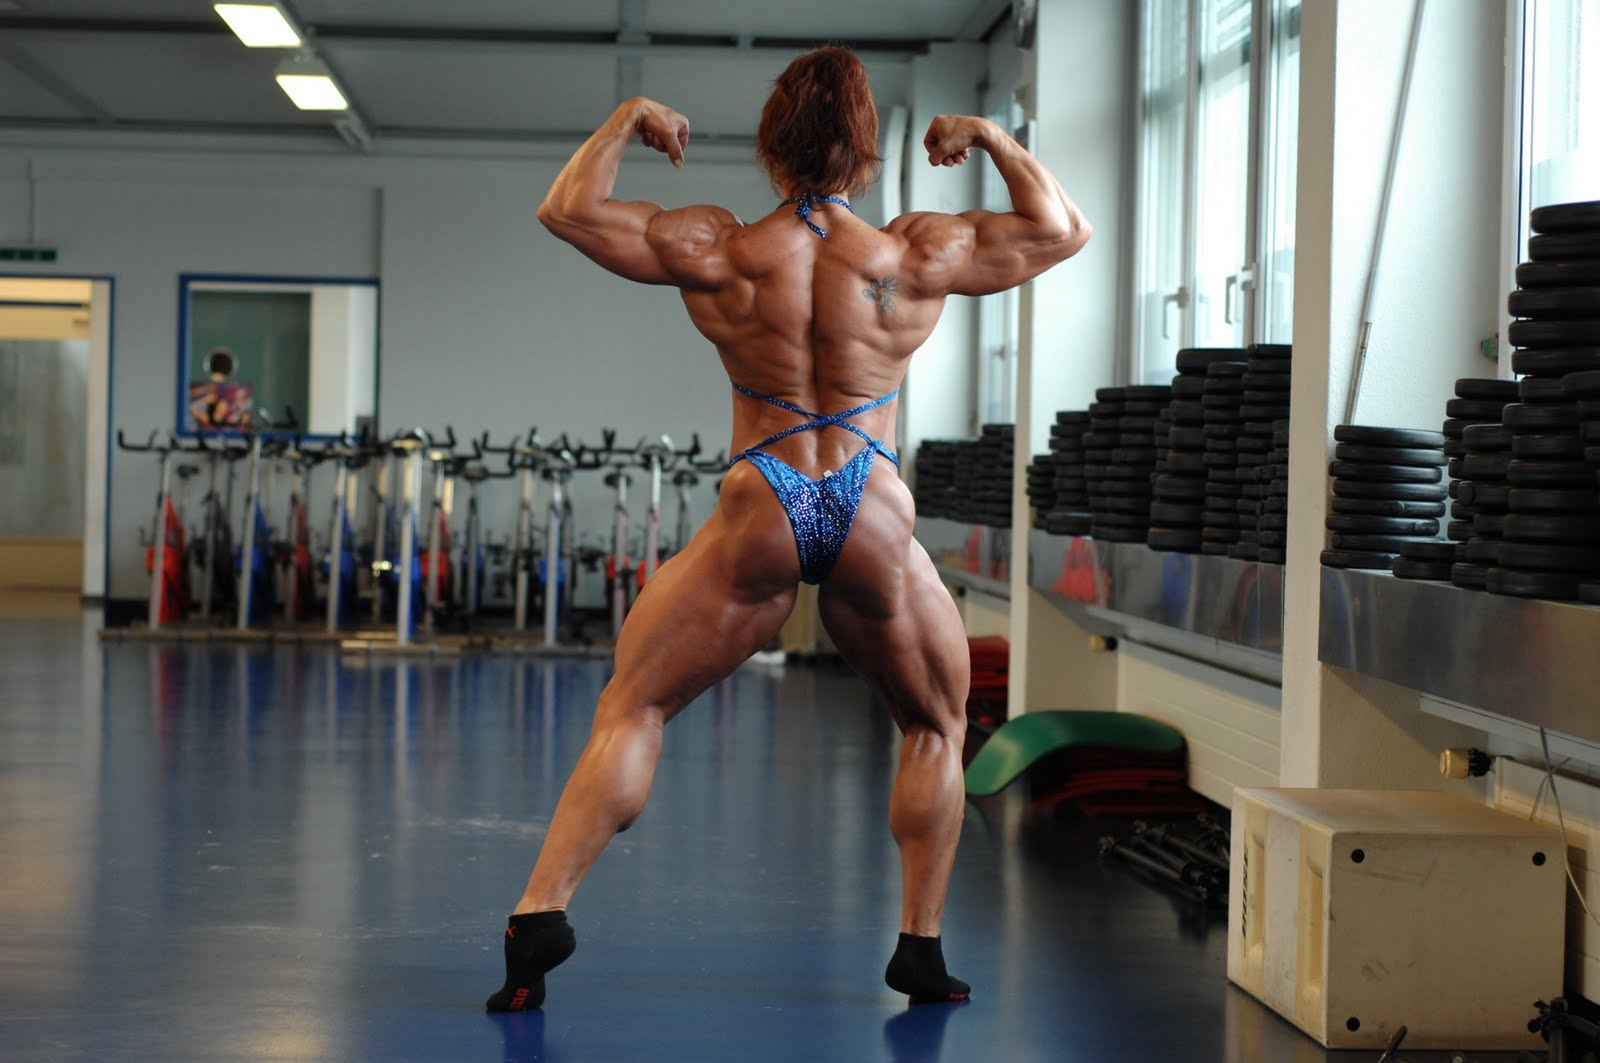 Hot muscular women .18+